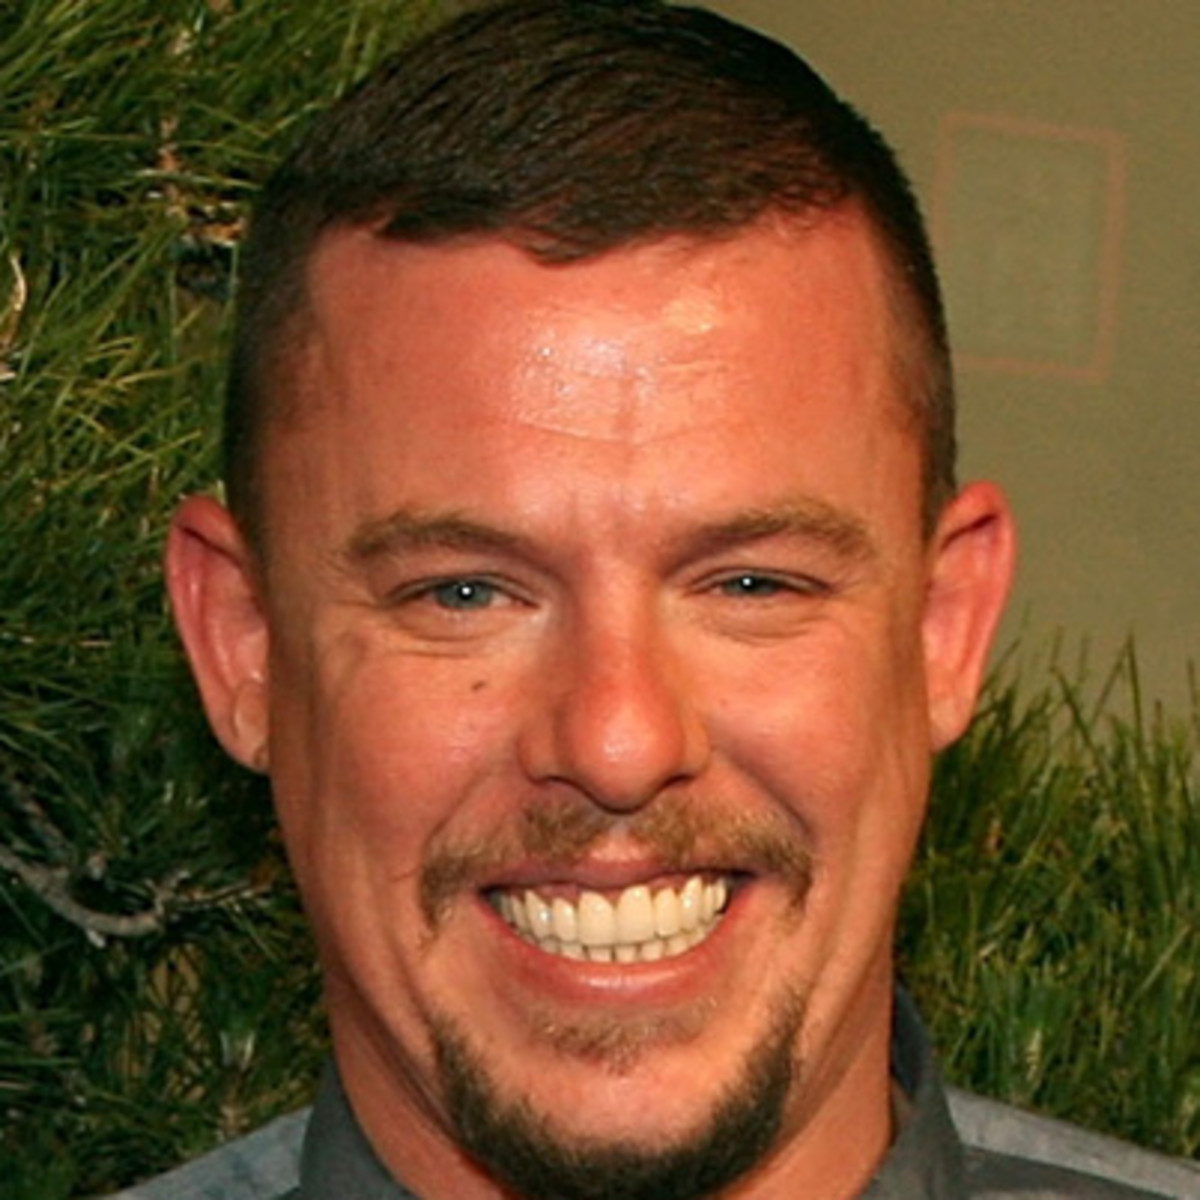 alexander mcqueen fashion designer biography. Black Bedroom Furniture Sets. Home Design Ideas